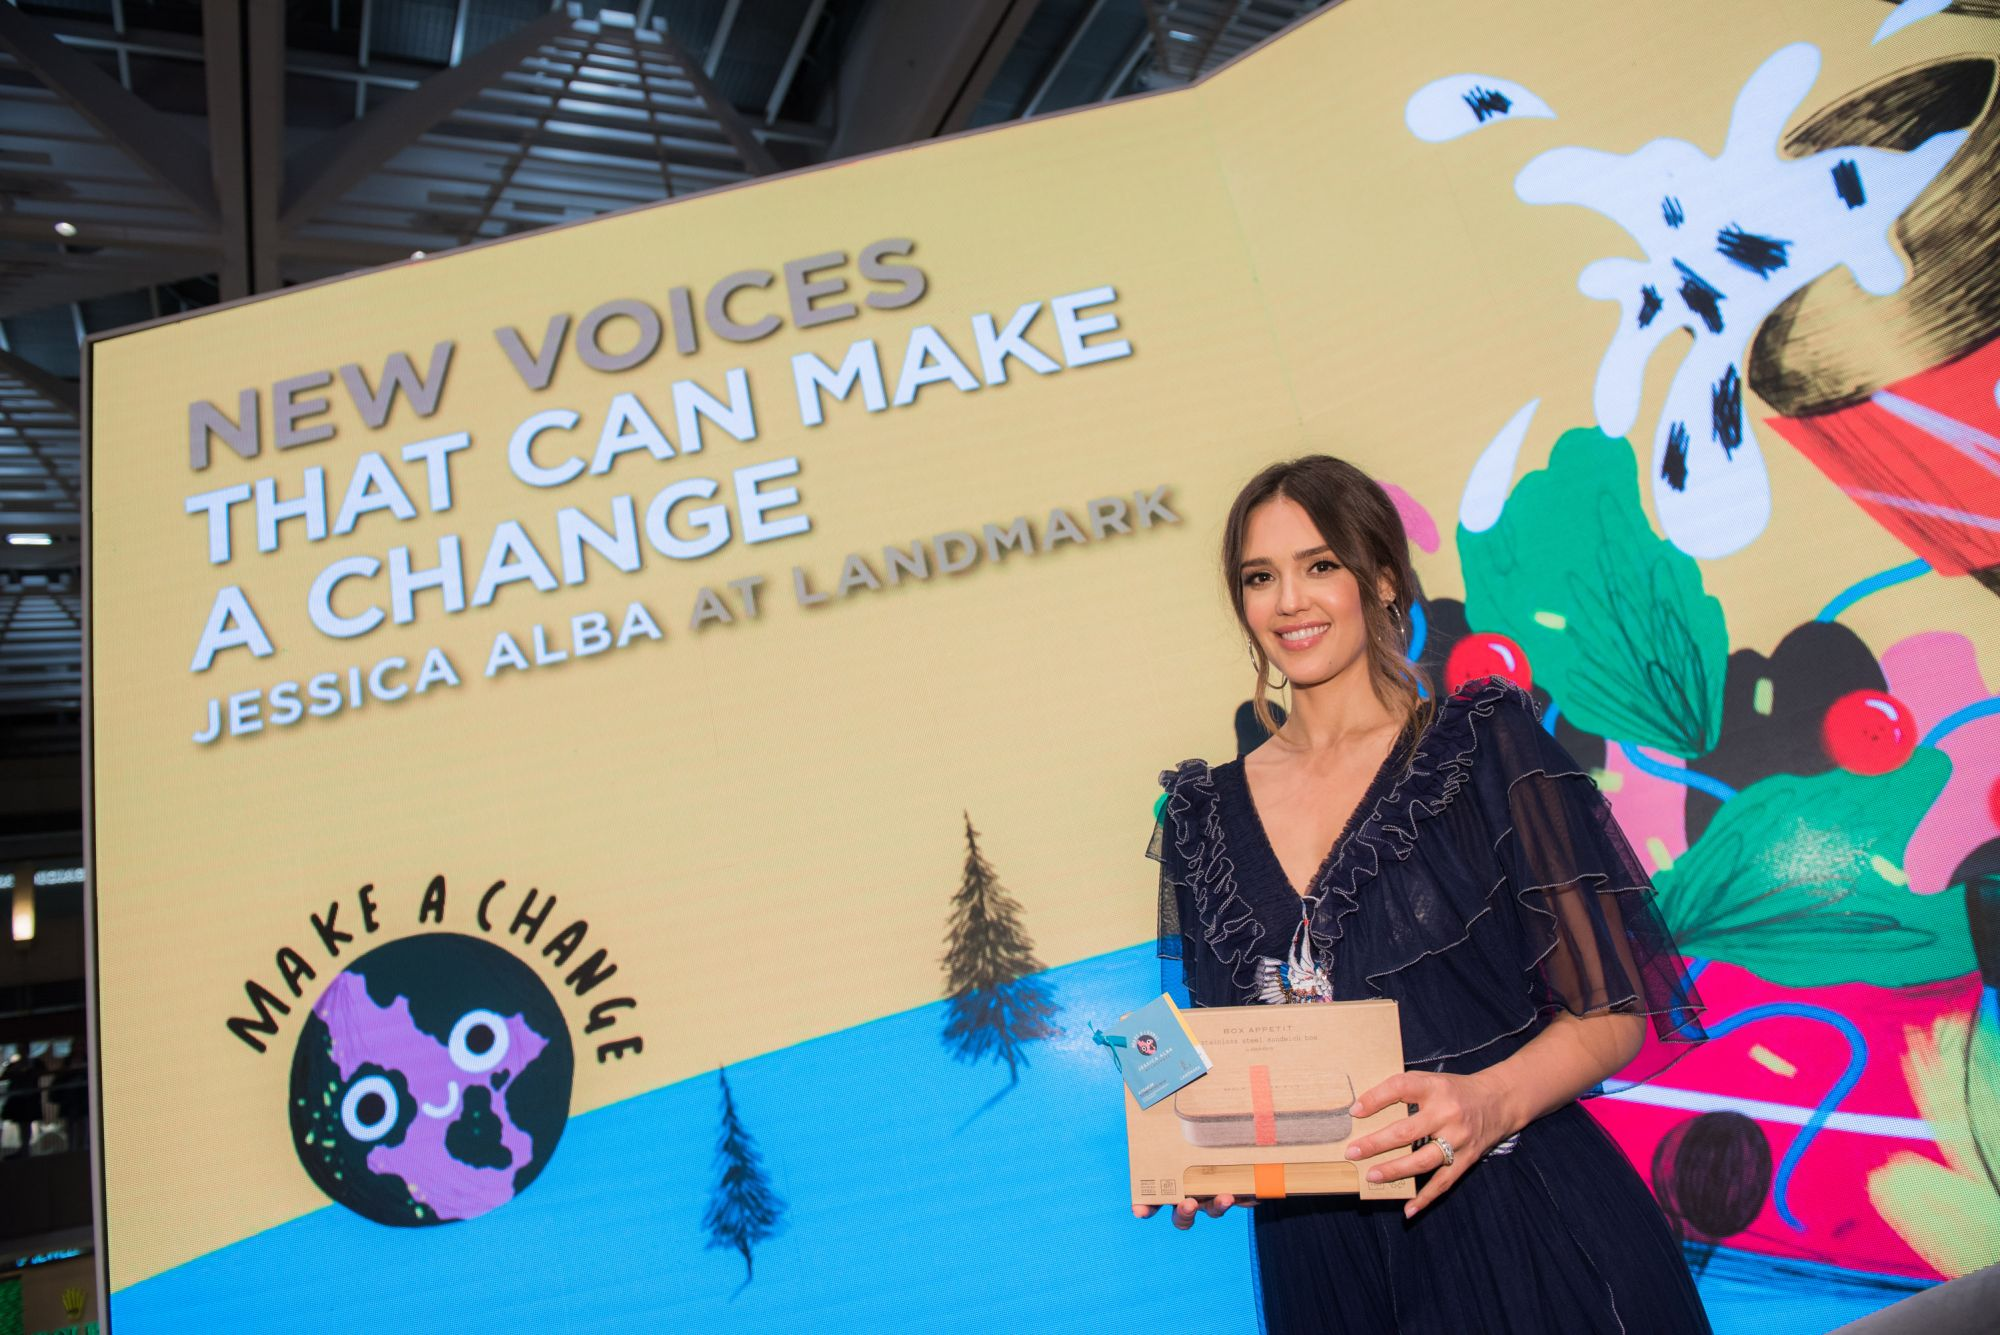 5 Key Takeaways From The Landmark Forum Featuring Jessica Alba